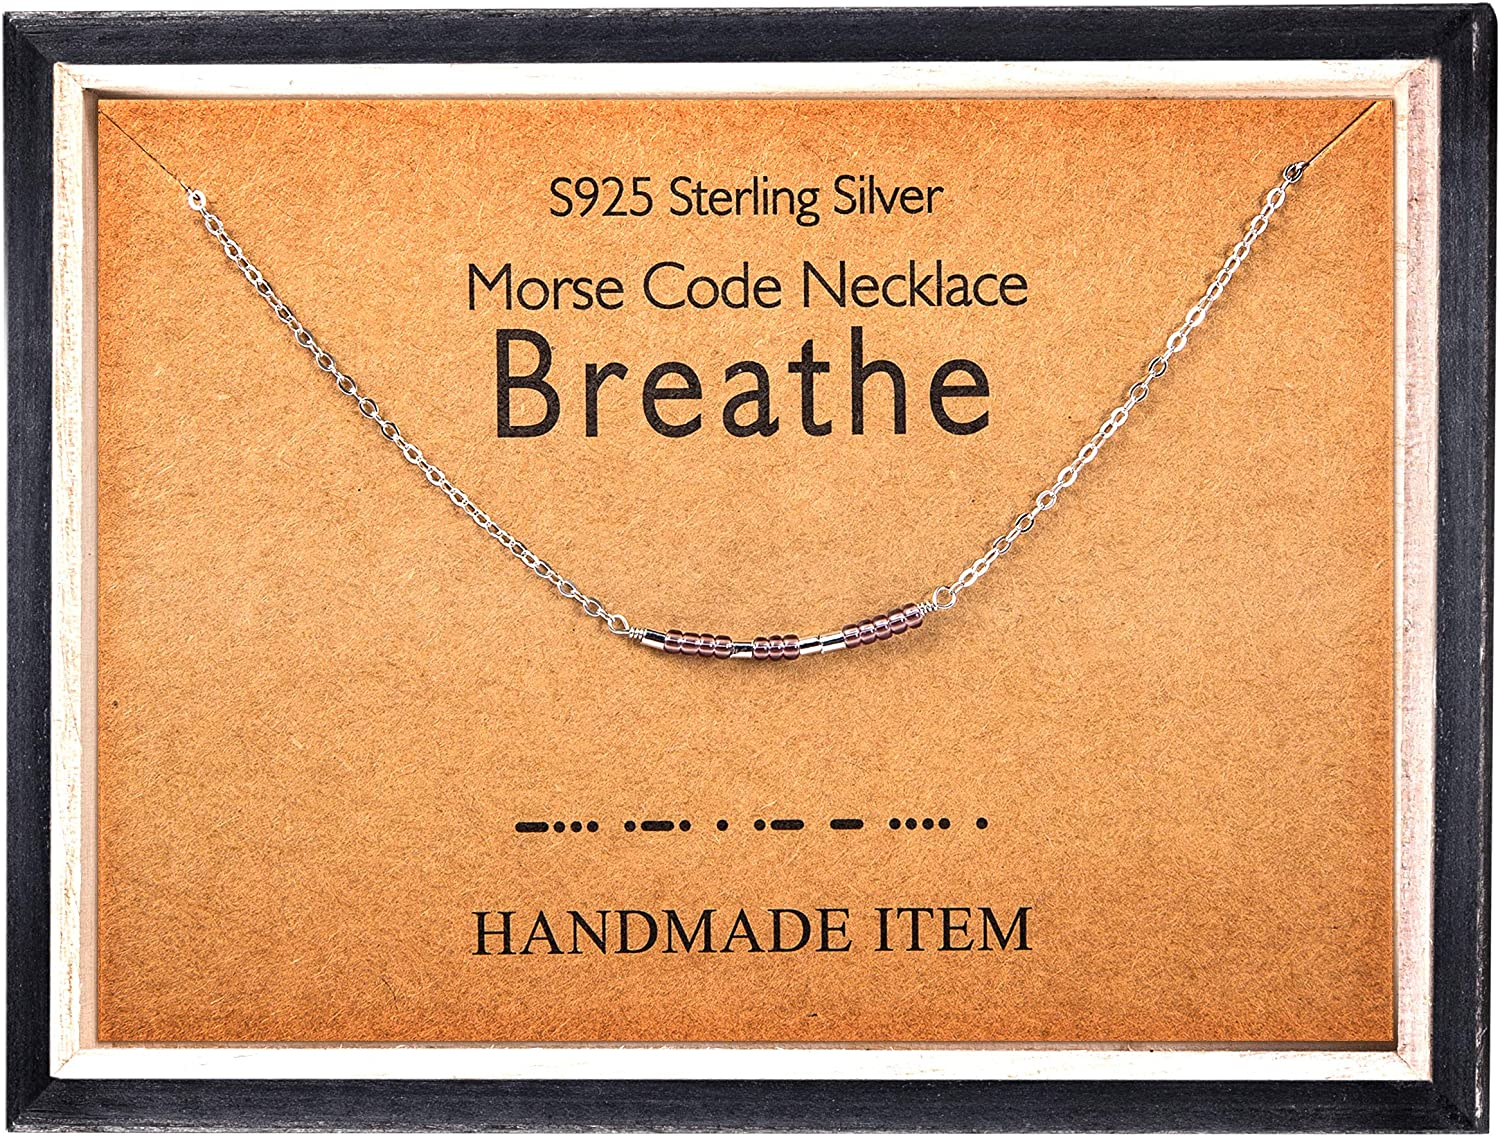 Secret Message Necklace Sterling Silver Morse Code Mother Necklace Mothers Day Gift in Morse Code Morse Code Necklace